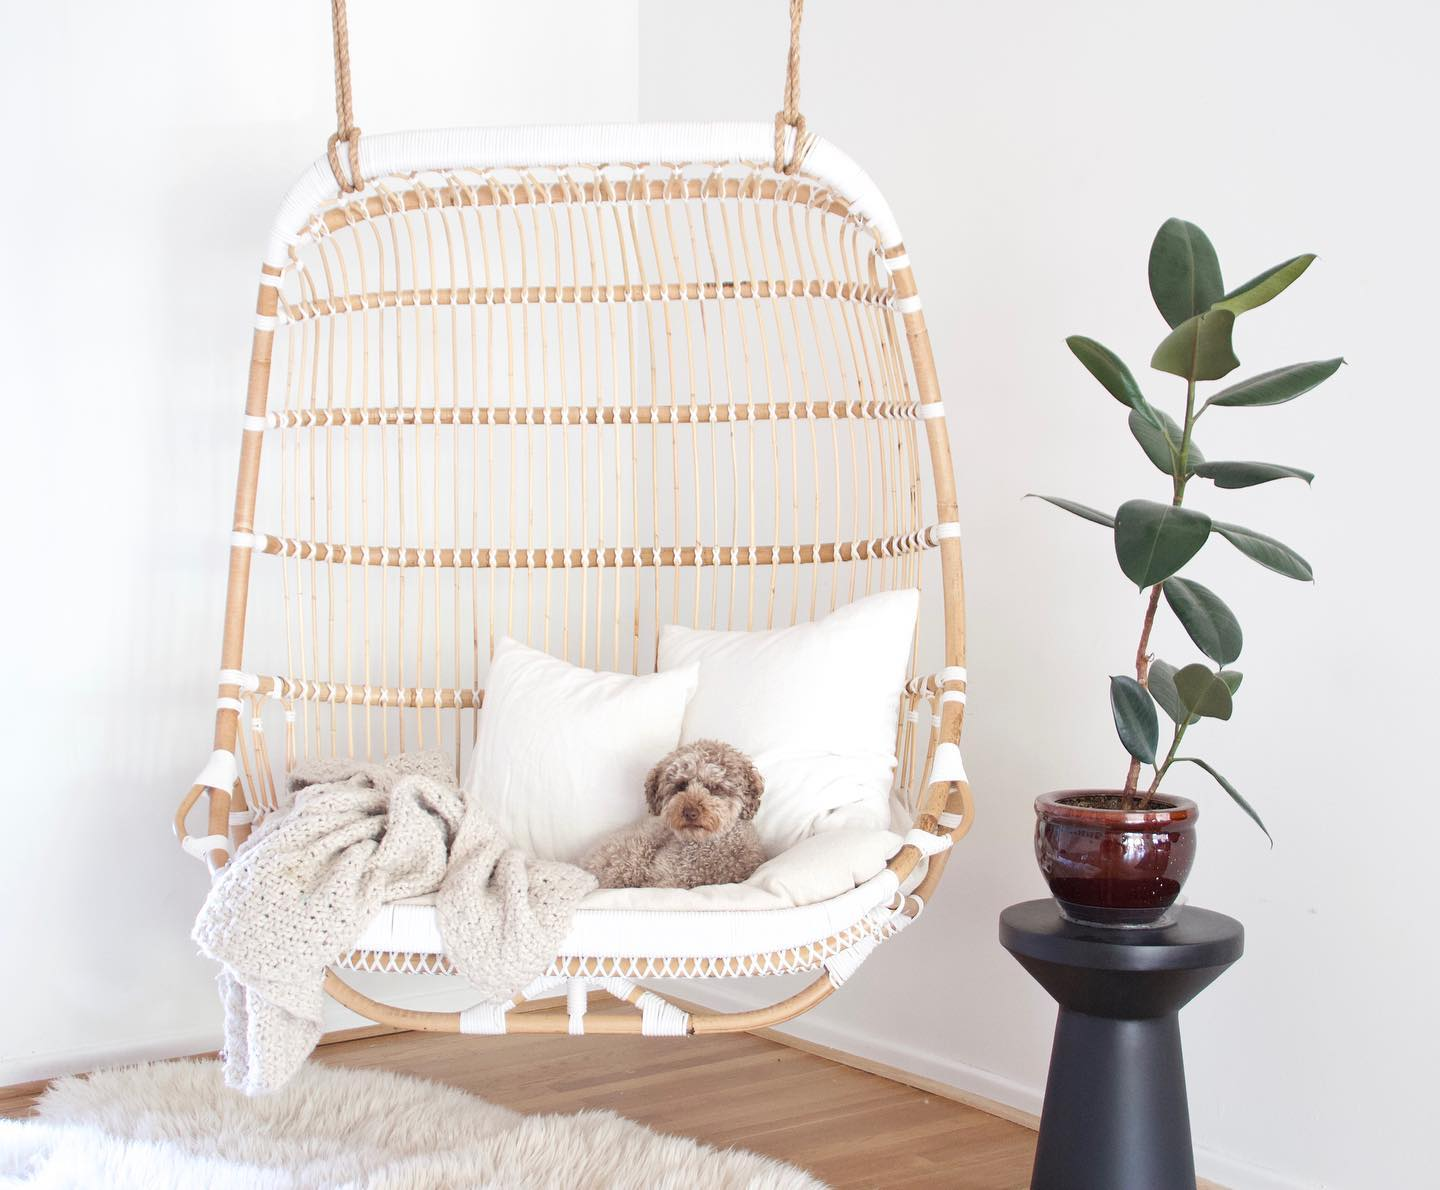 indoor-double-basket-chair-with-thick-cushion-and-adog-sitting-on